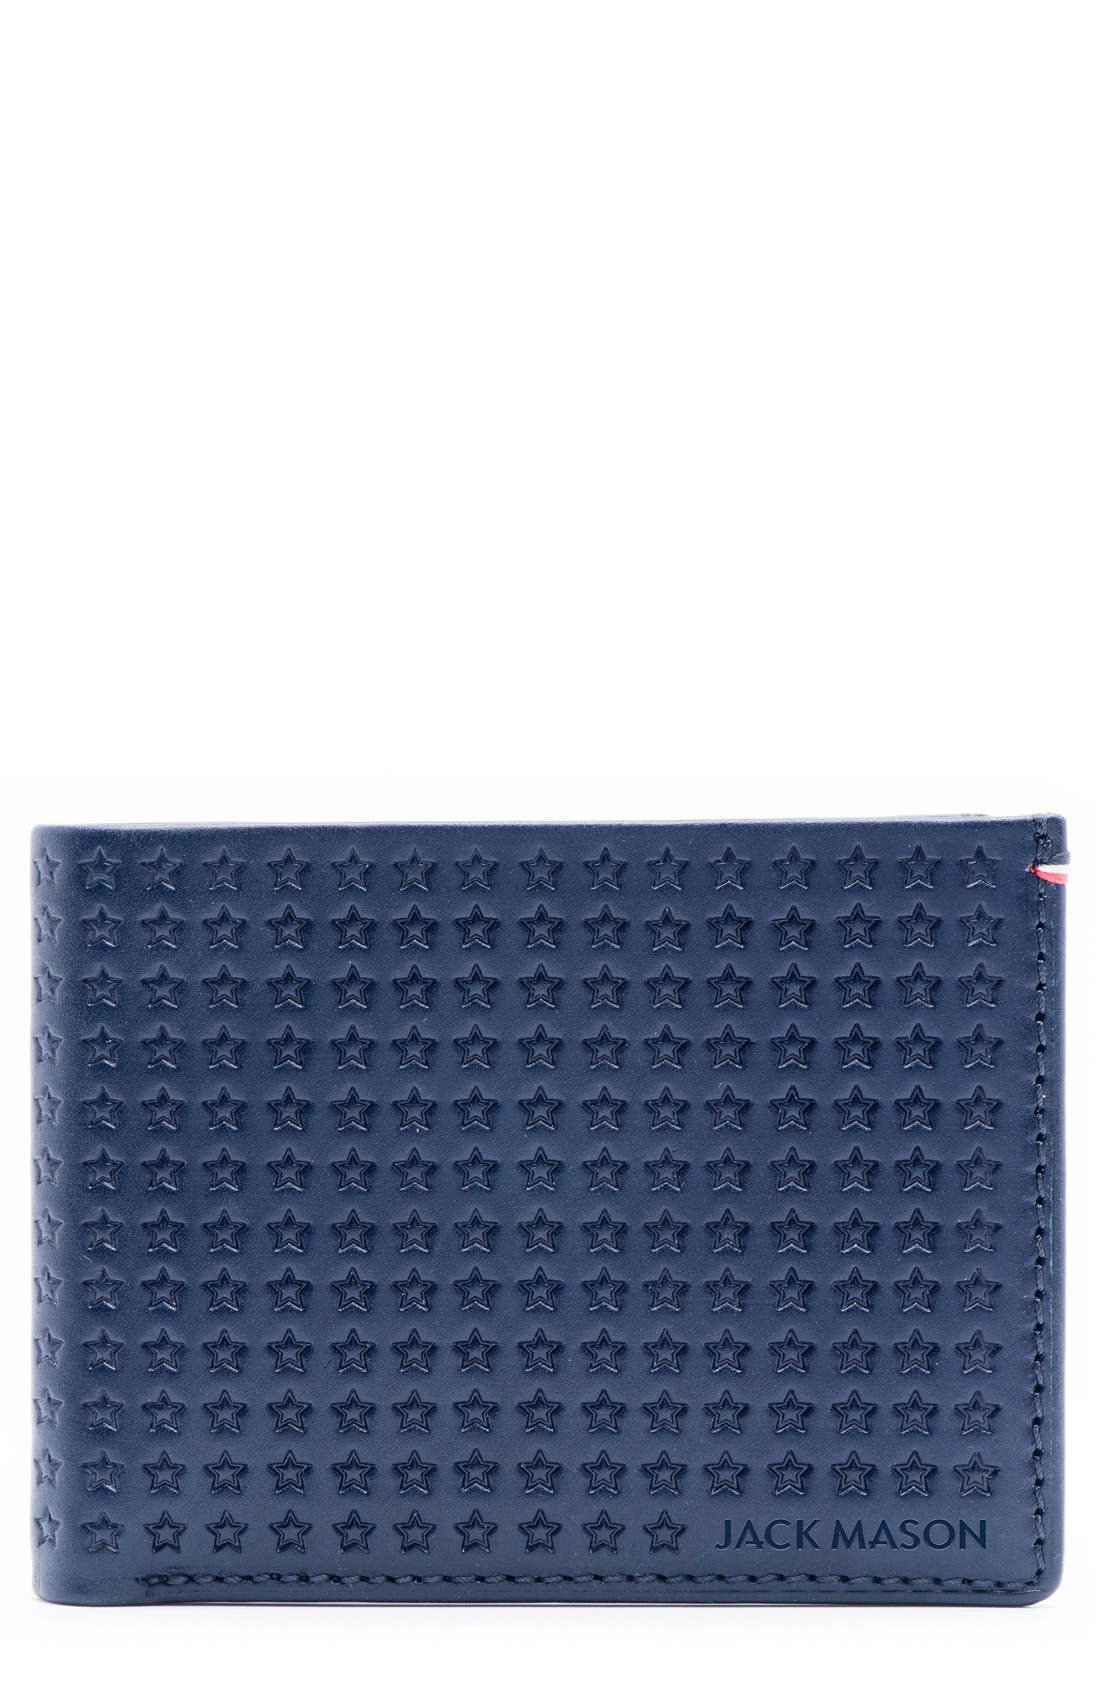 Star Leather Bifold Wallet,                         Main,                         color, Navy